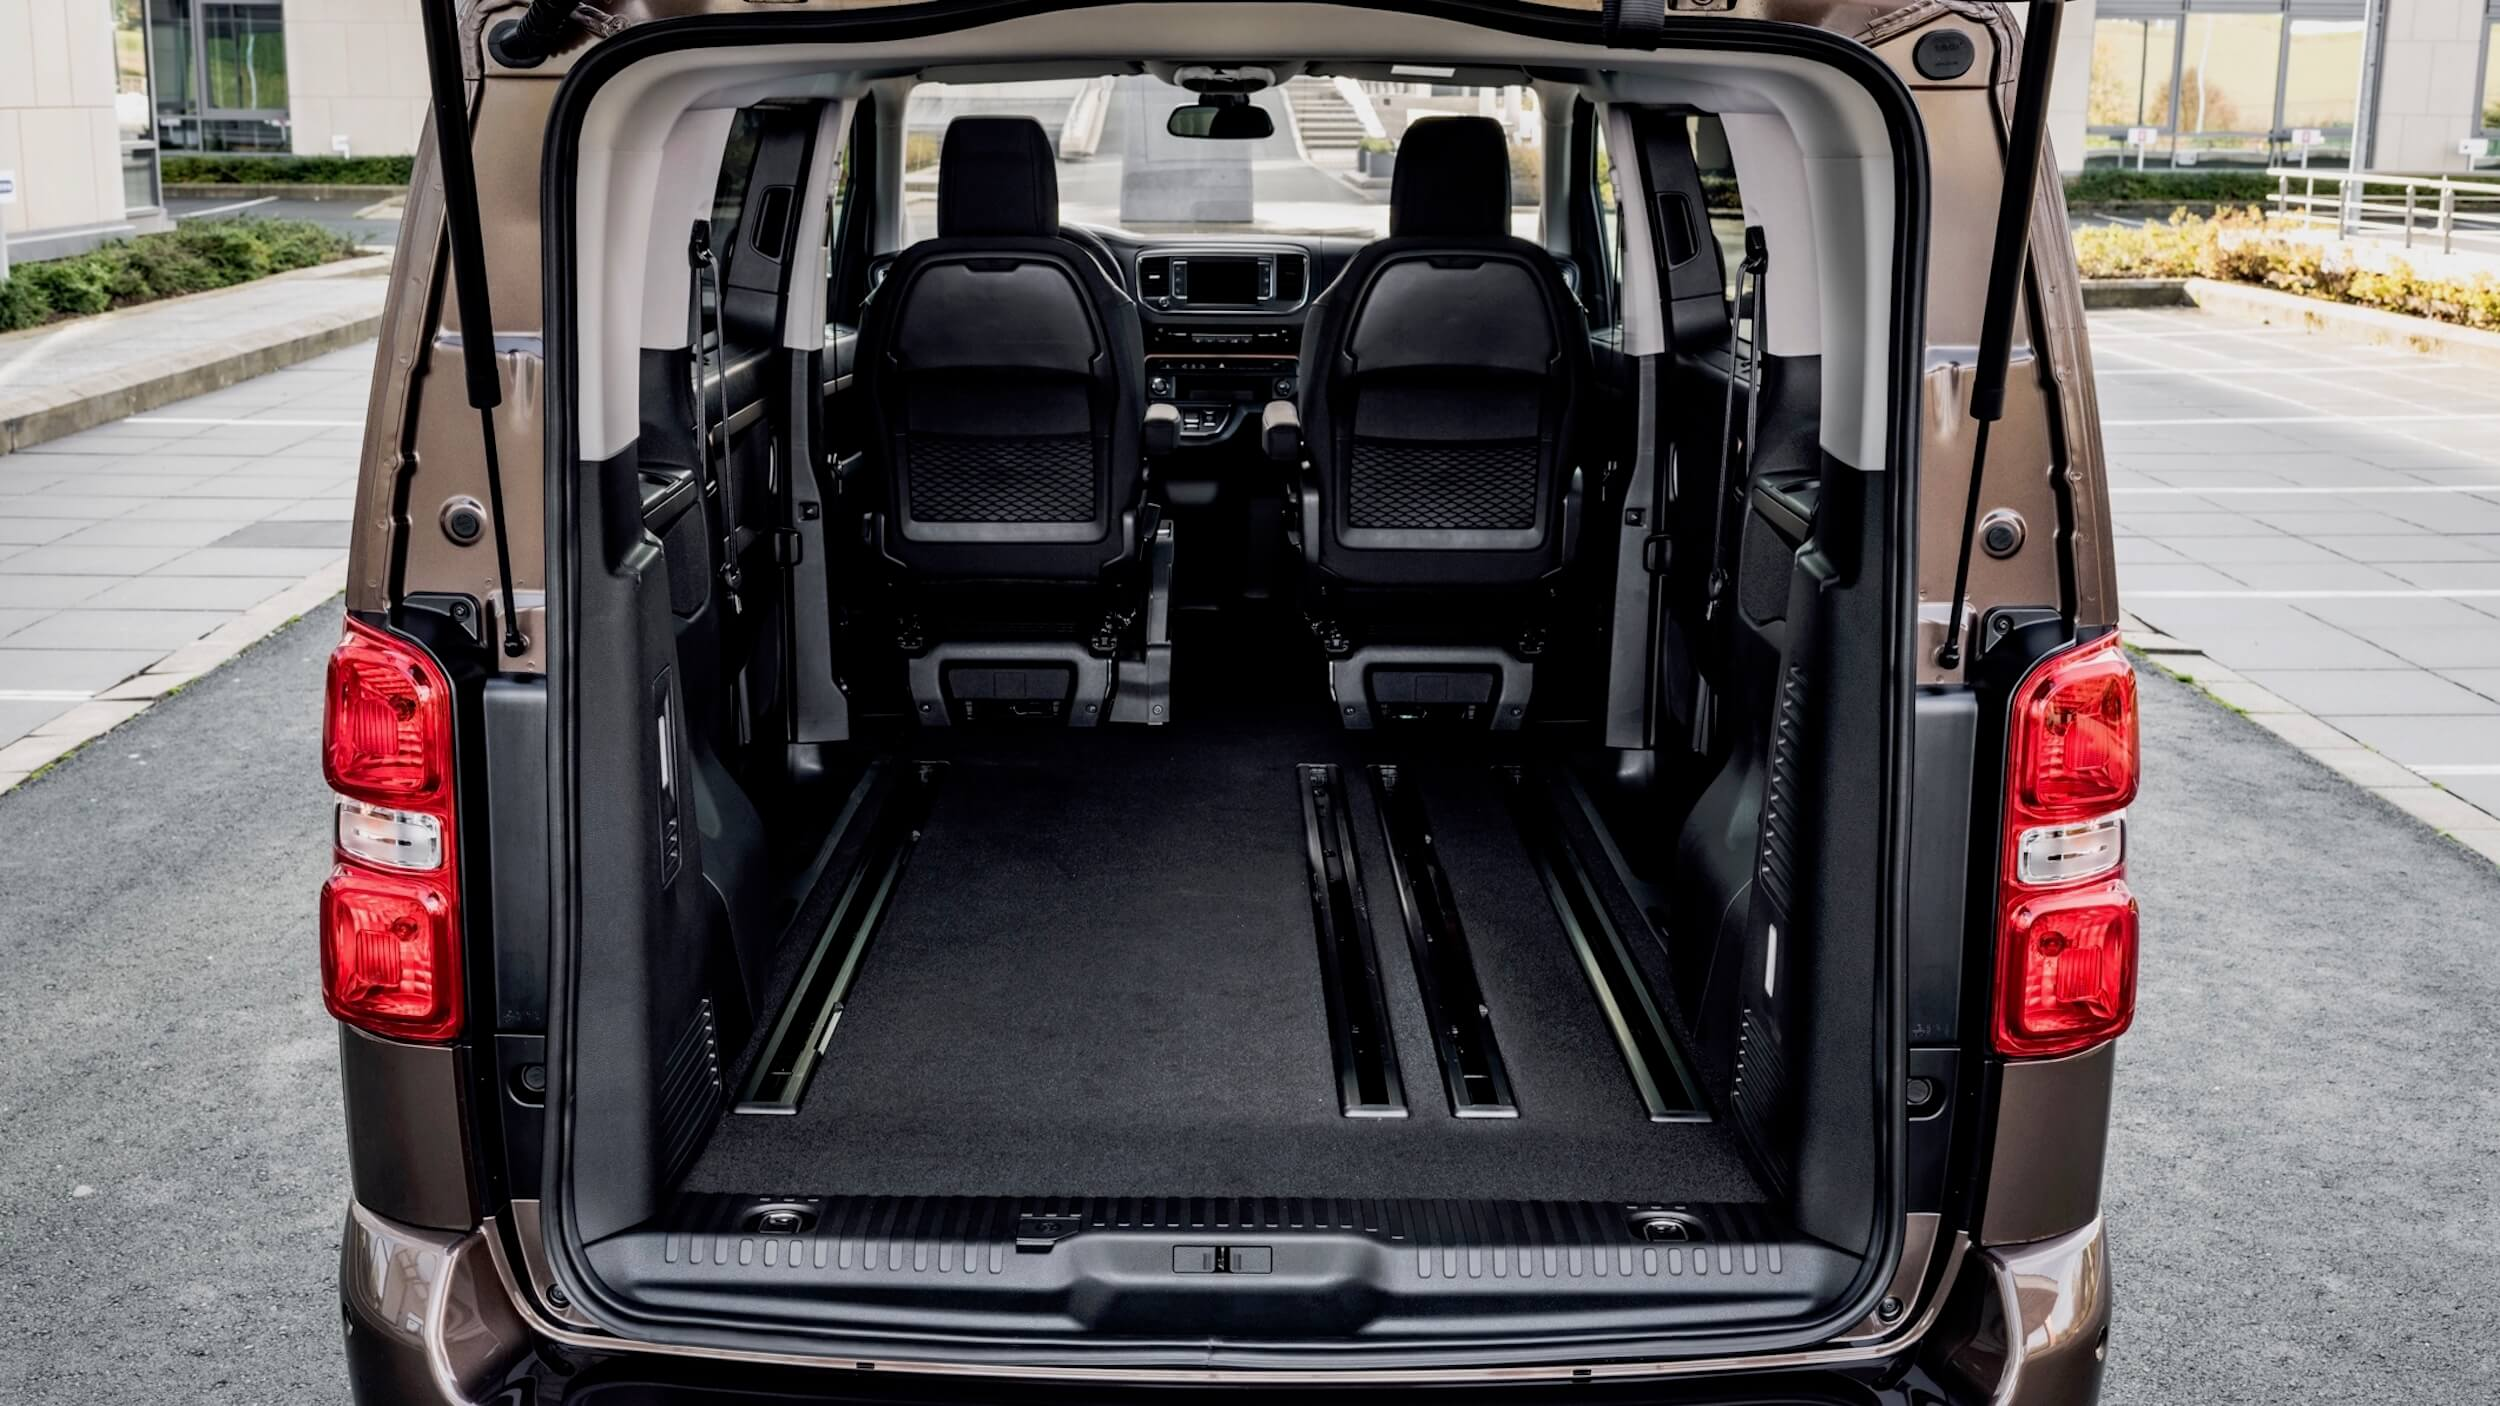 Toyota Proace Verso Electric koffer